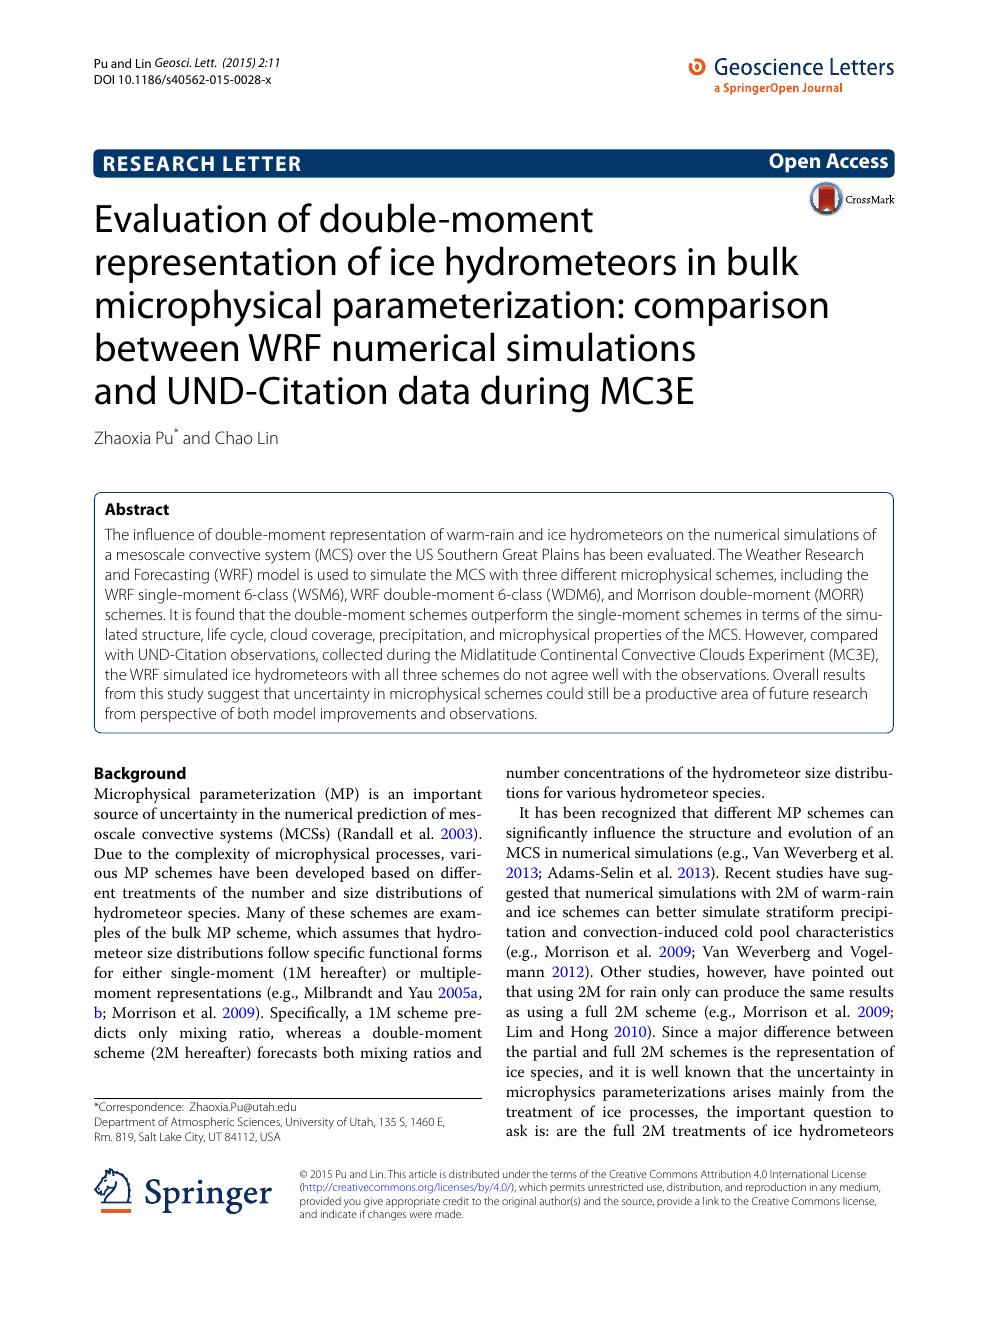 Evaluation of double-moment representation of ice